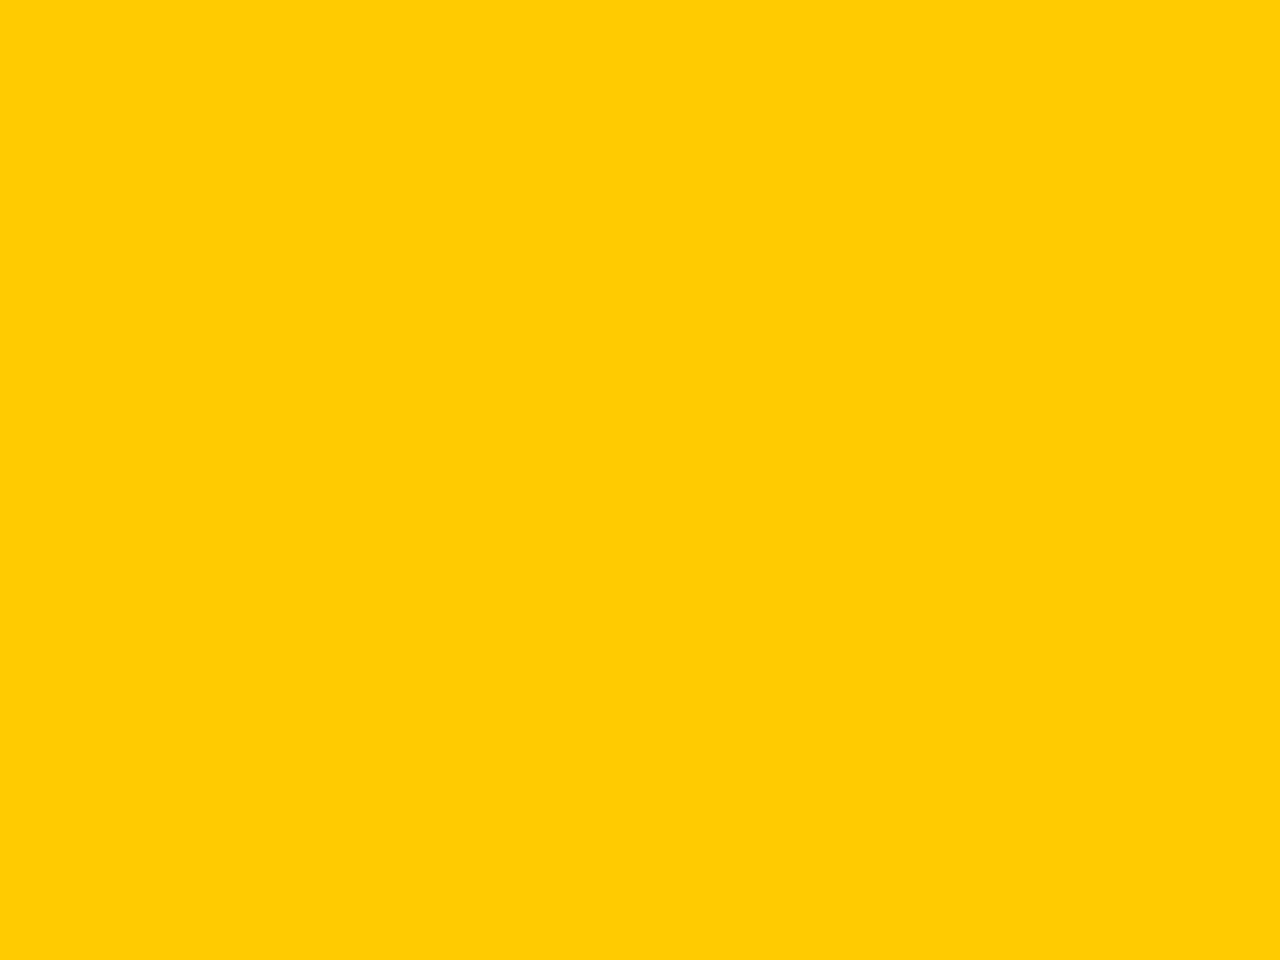 1280x960 USC Gold Solid Color Background